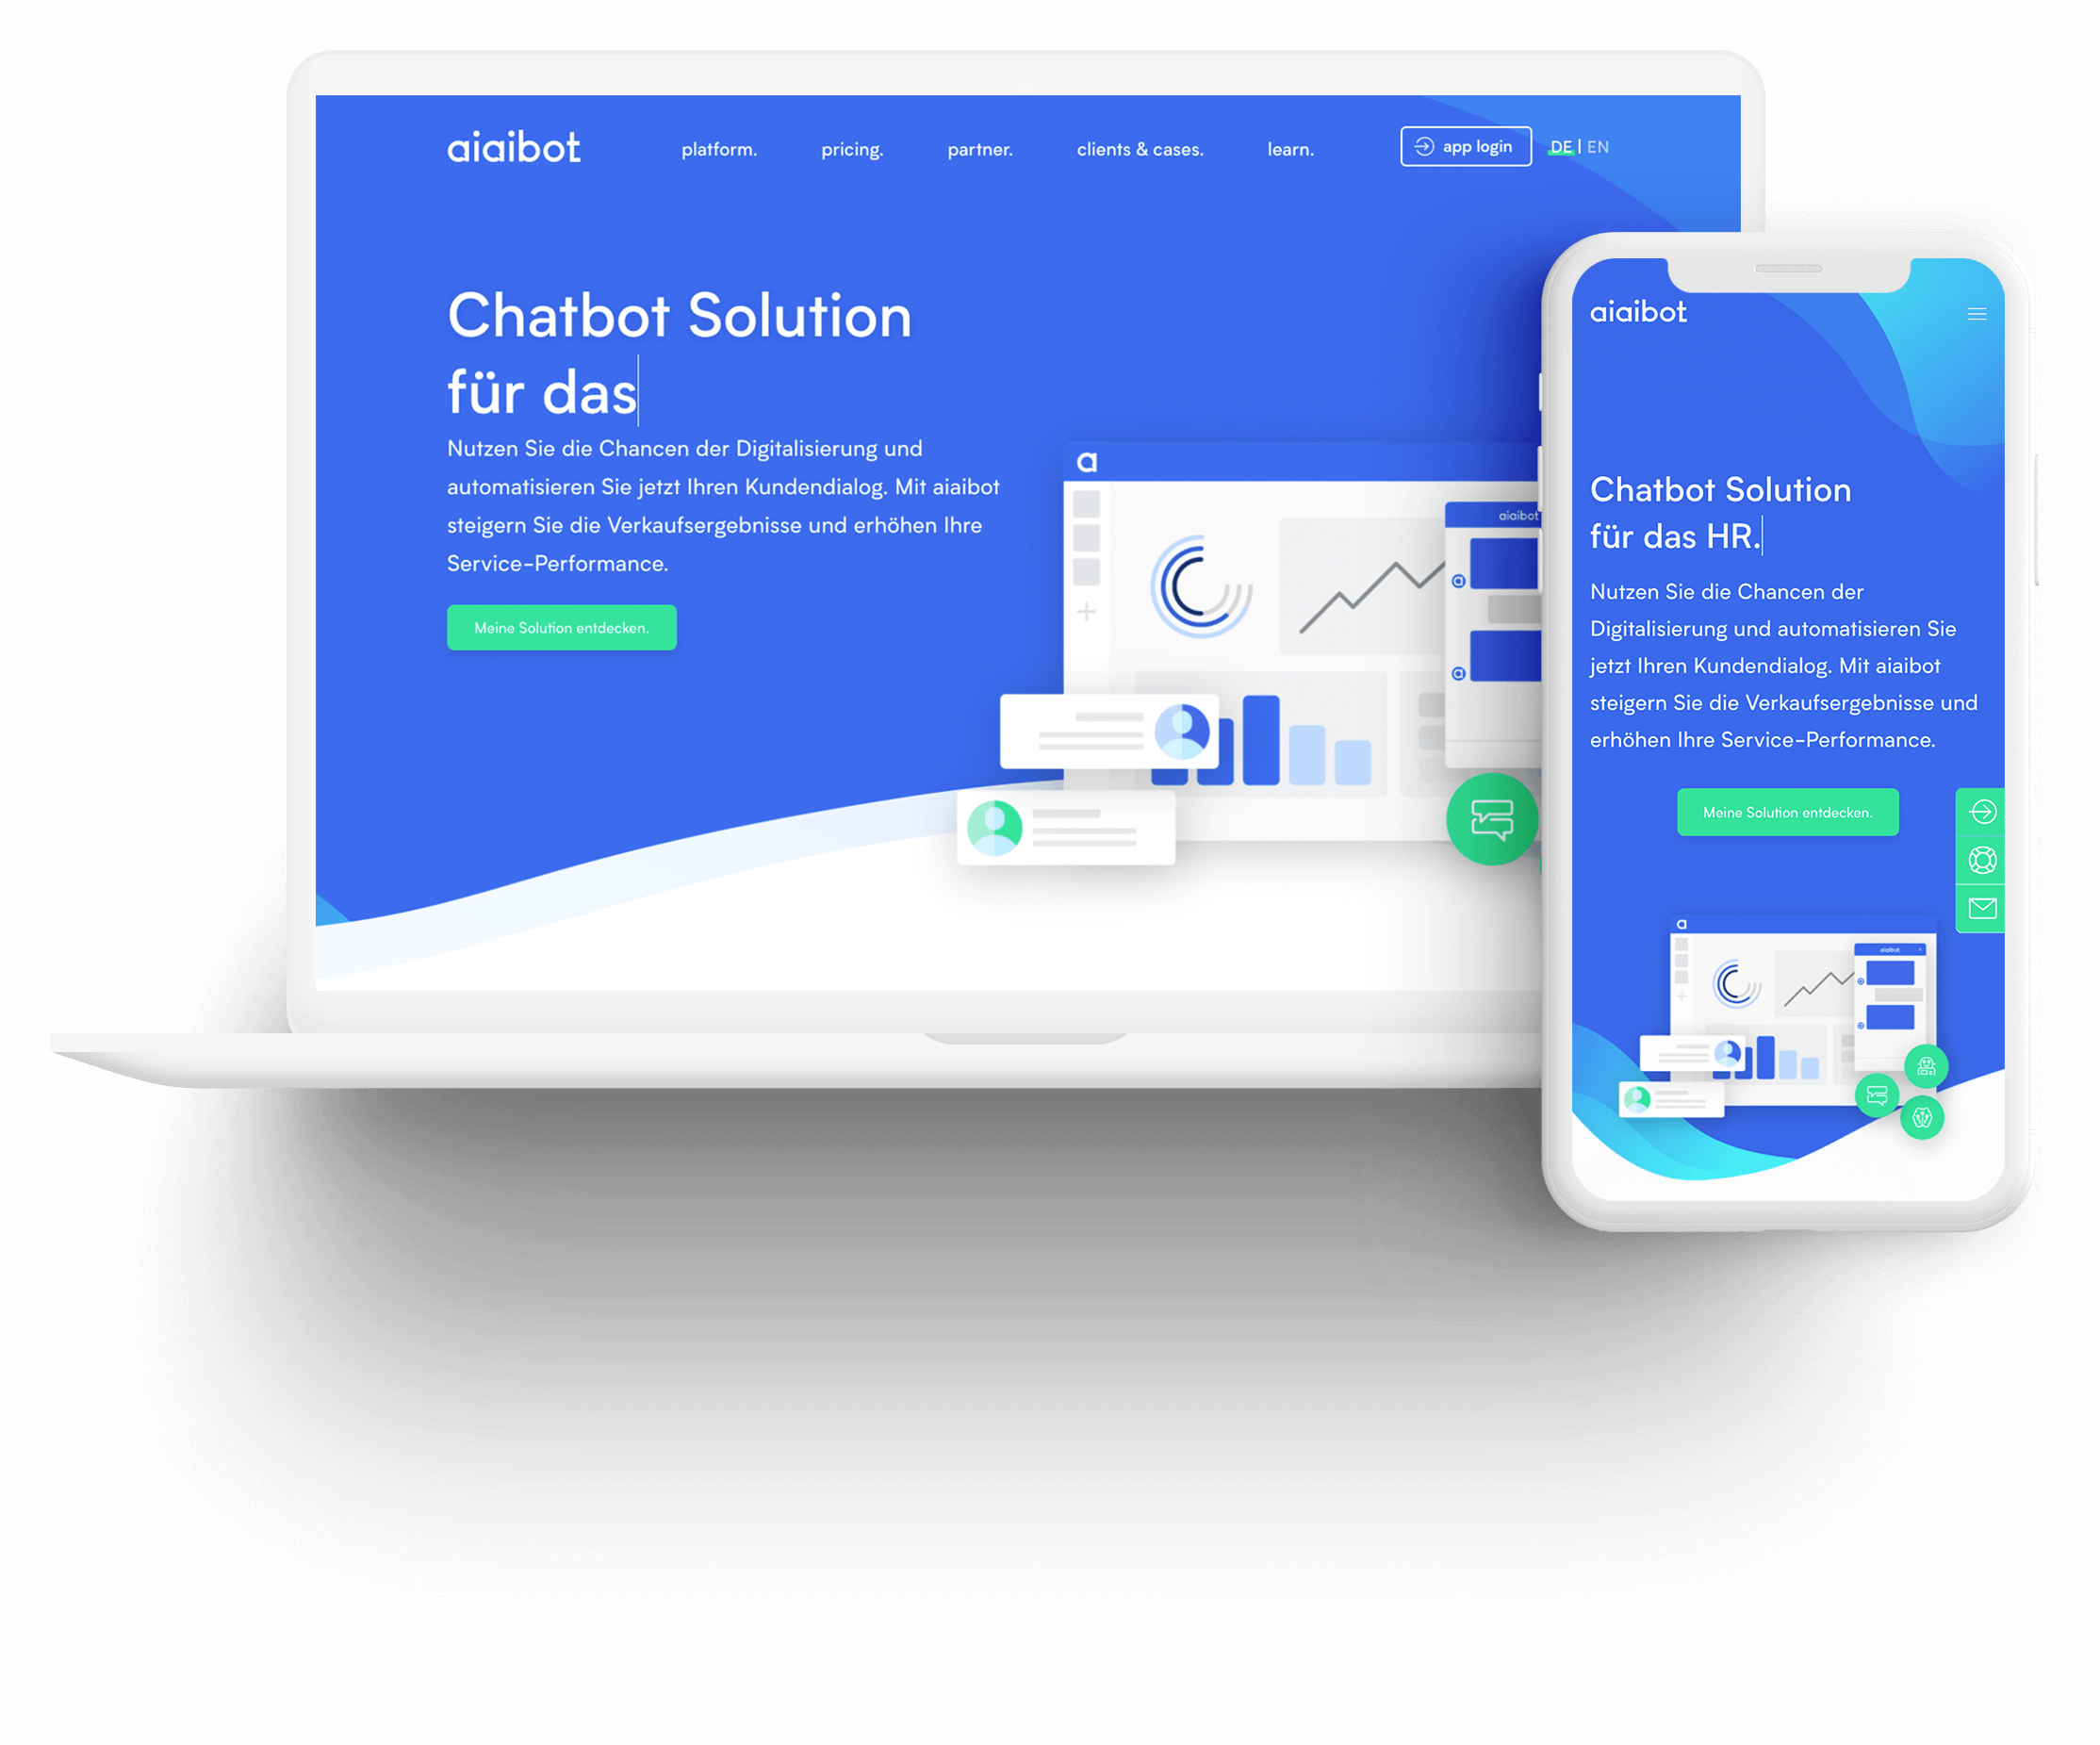 Laptop and smartphone monitor with AIAIBOT homepage